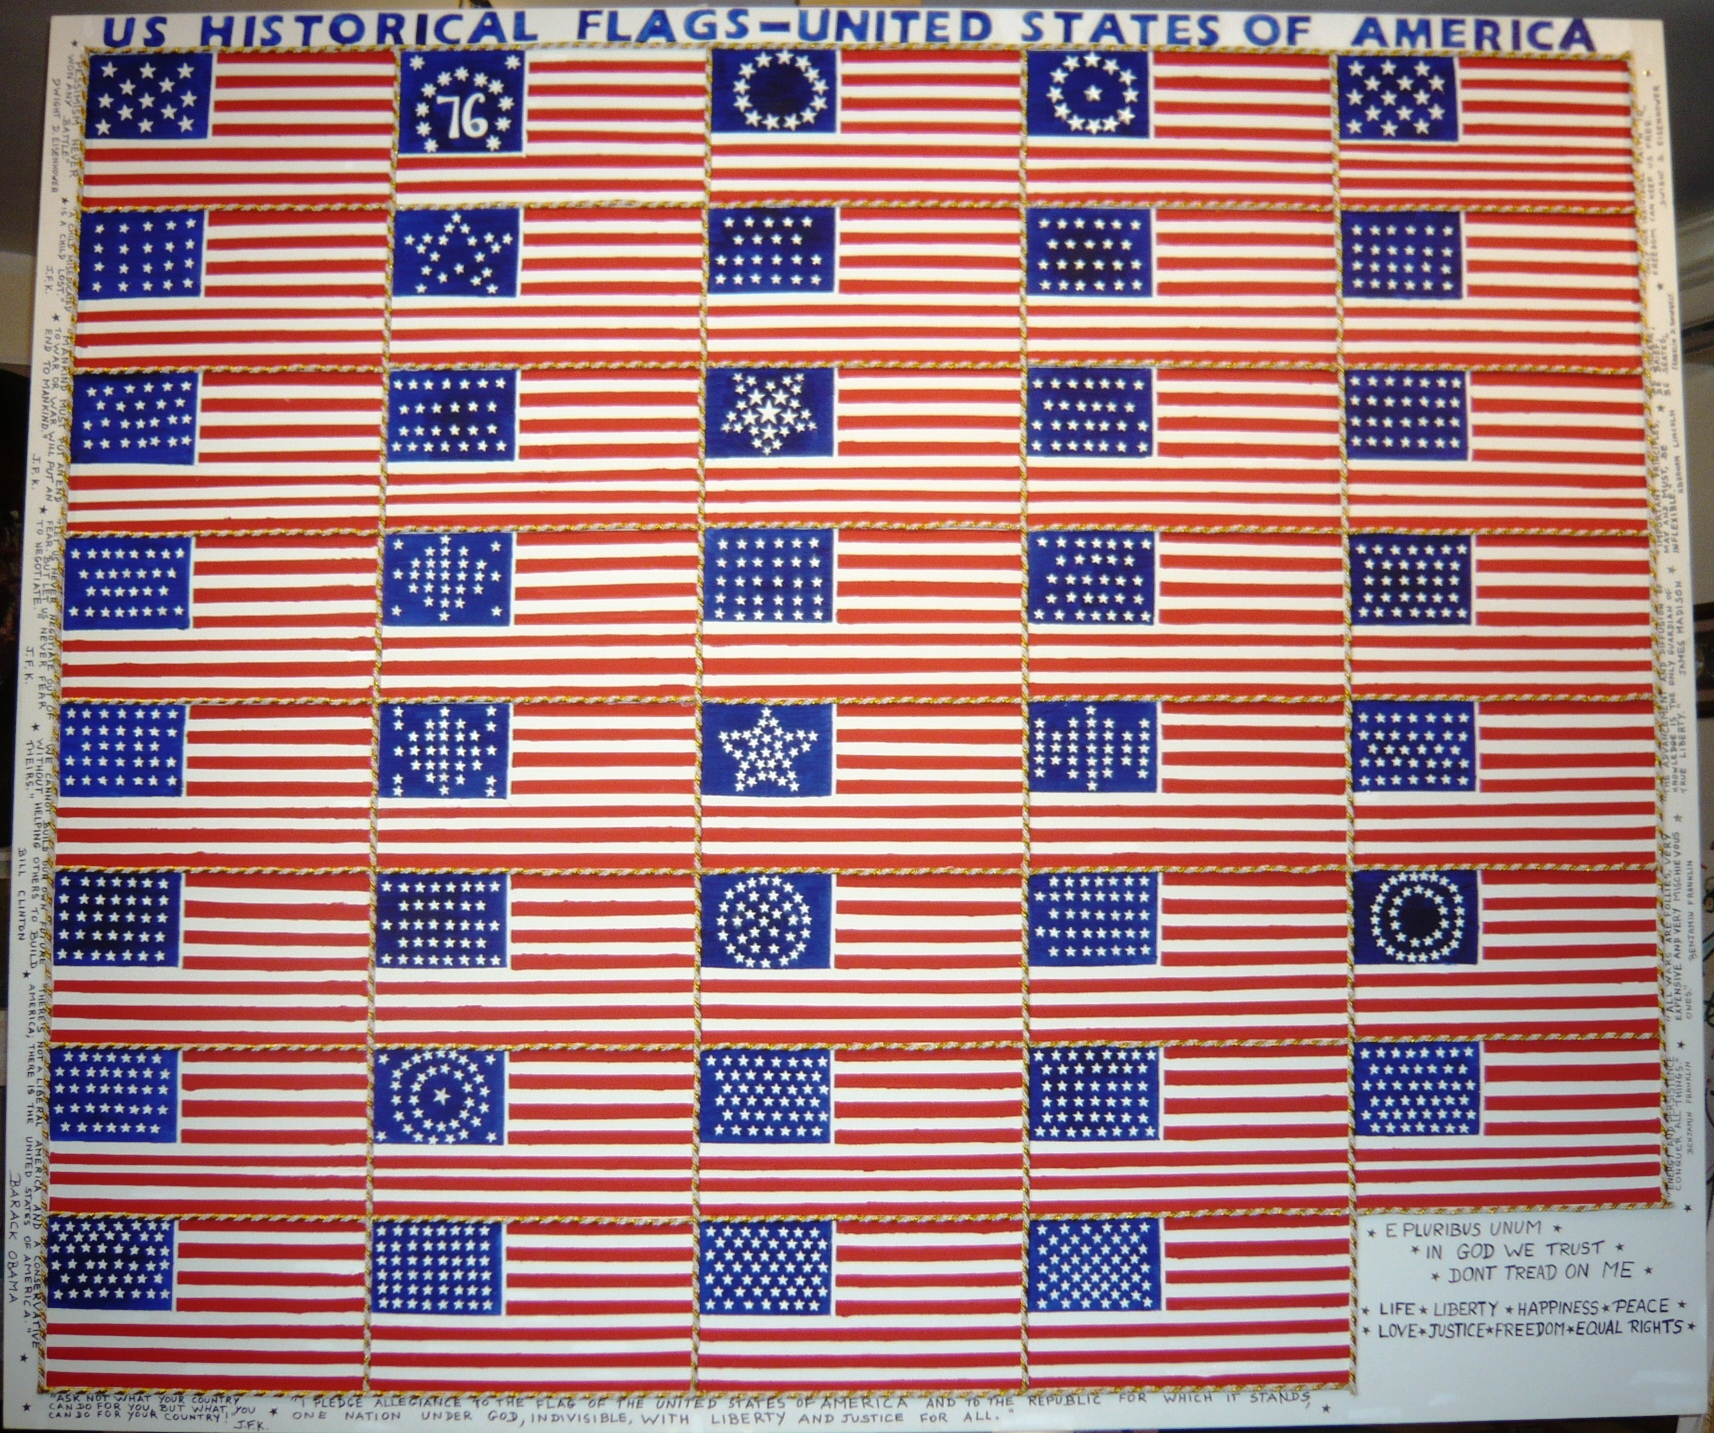 history of the flags of the united states wikipedia